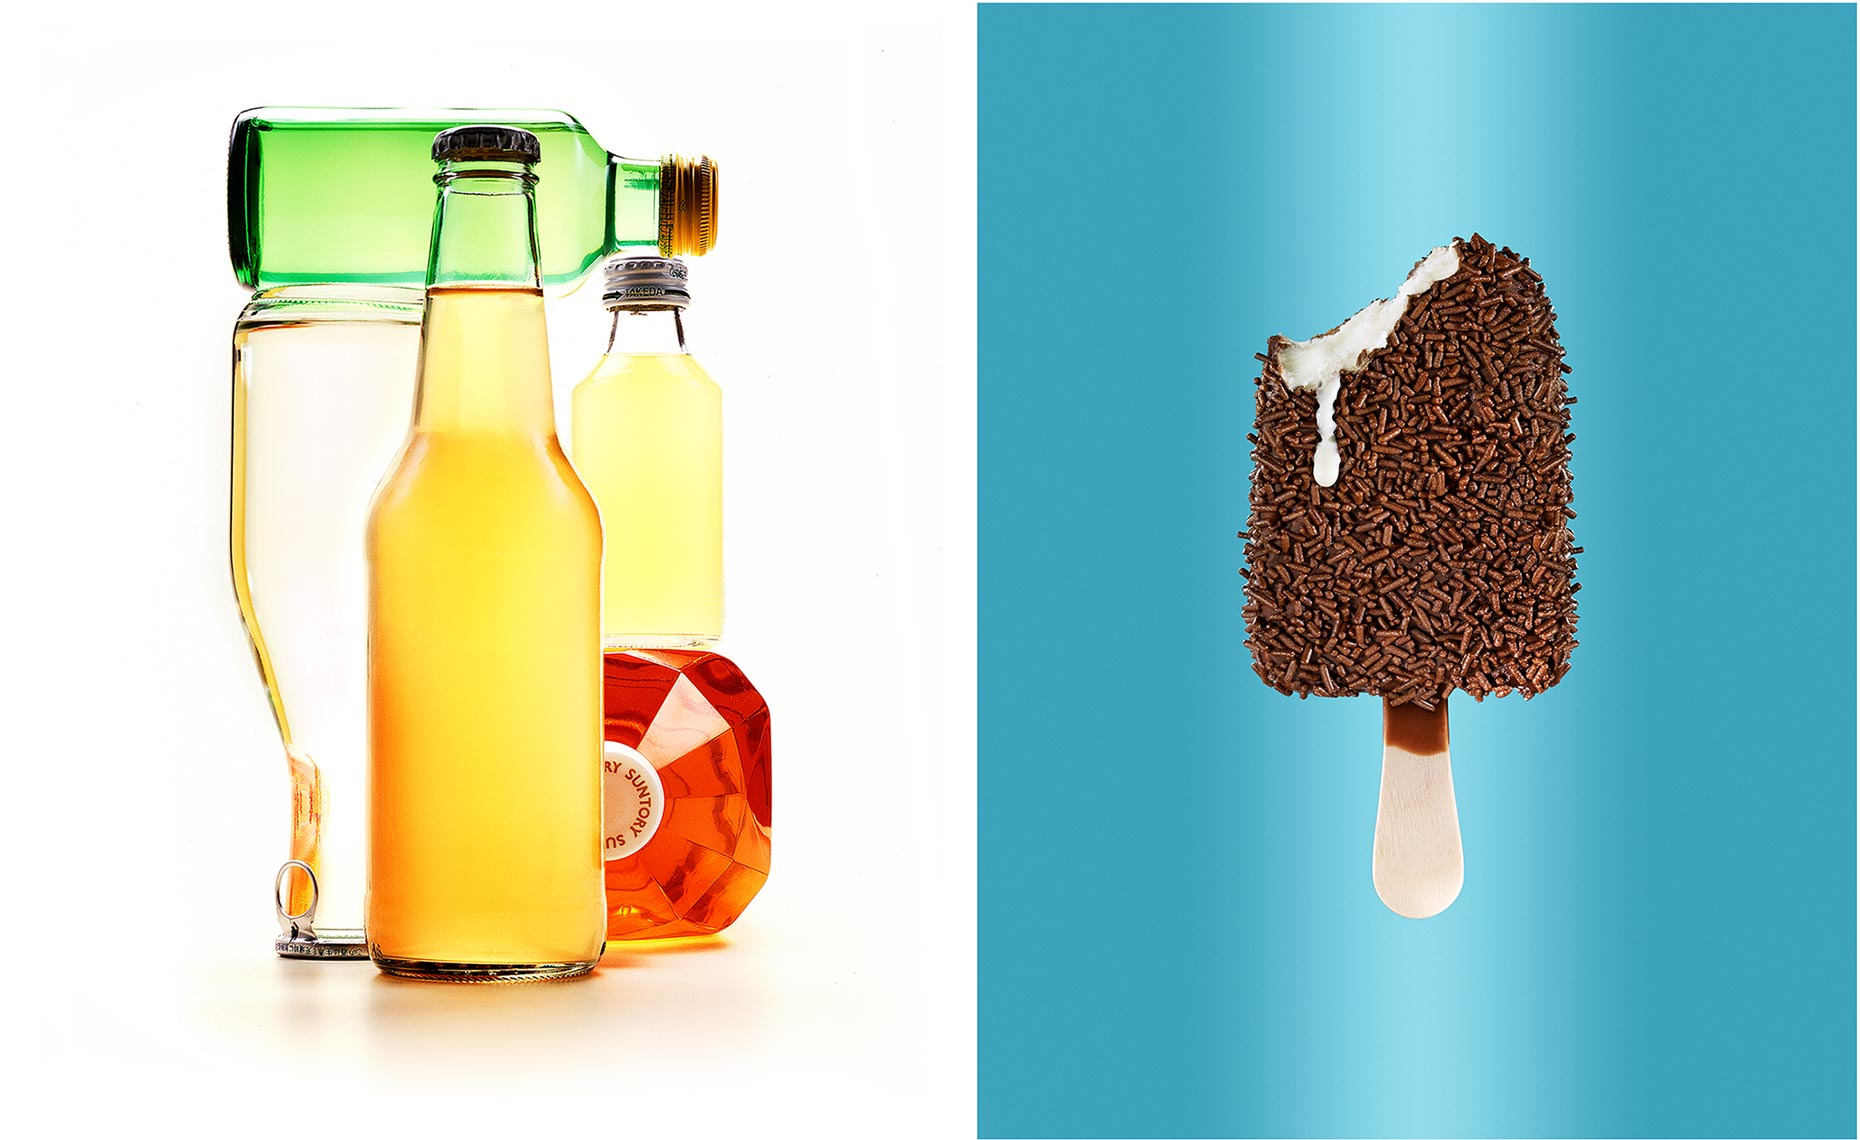 Bottles-Jimy-ice-cream.jpg